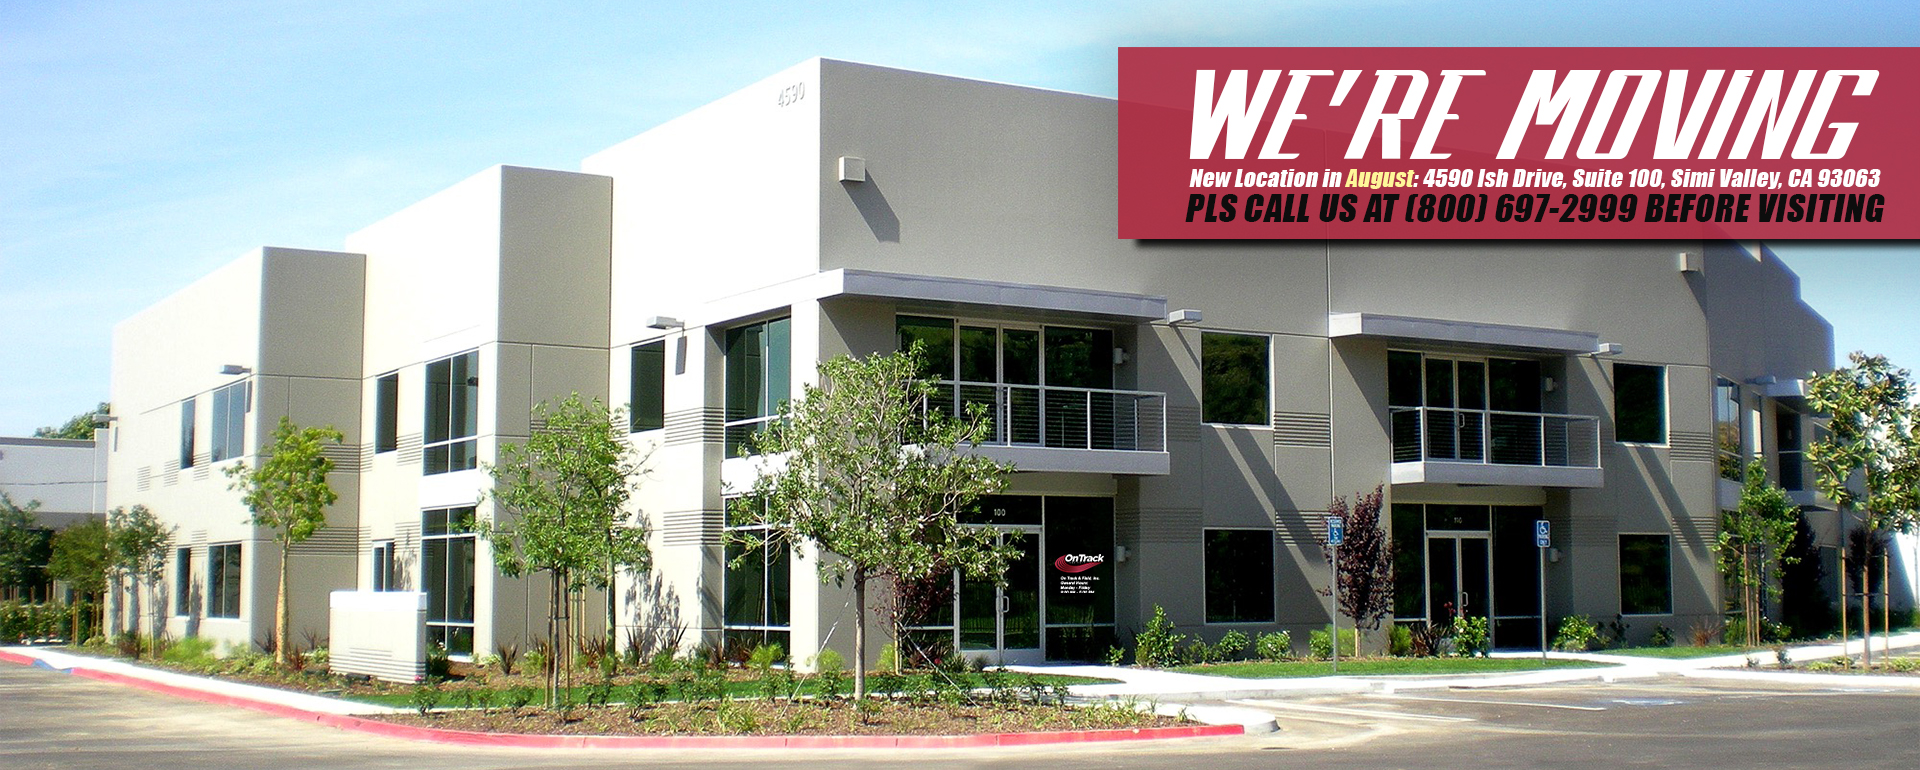 New Location in August, 2021: 4590 Ish Drive, Simi Valley, Suite 100, California 93063